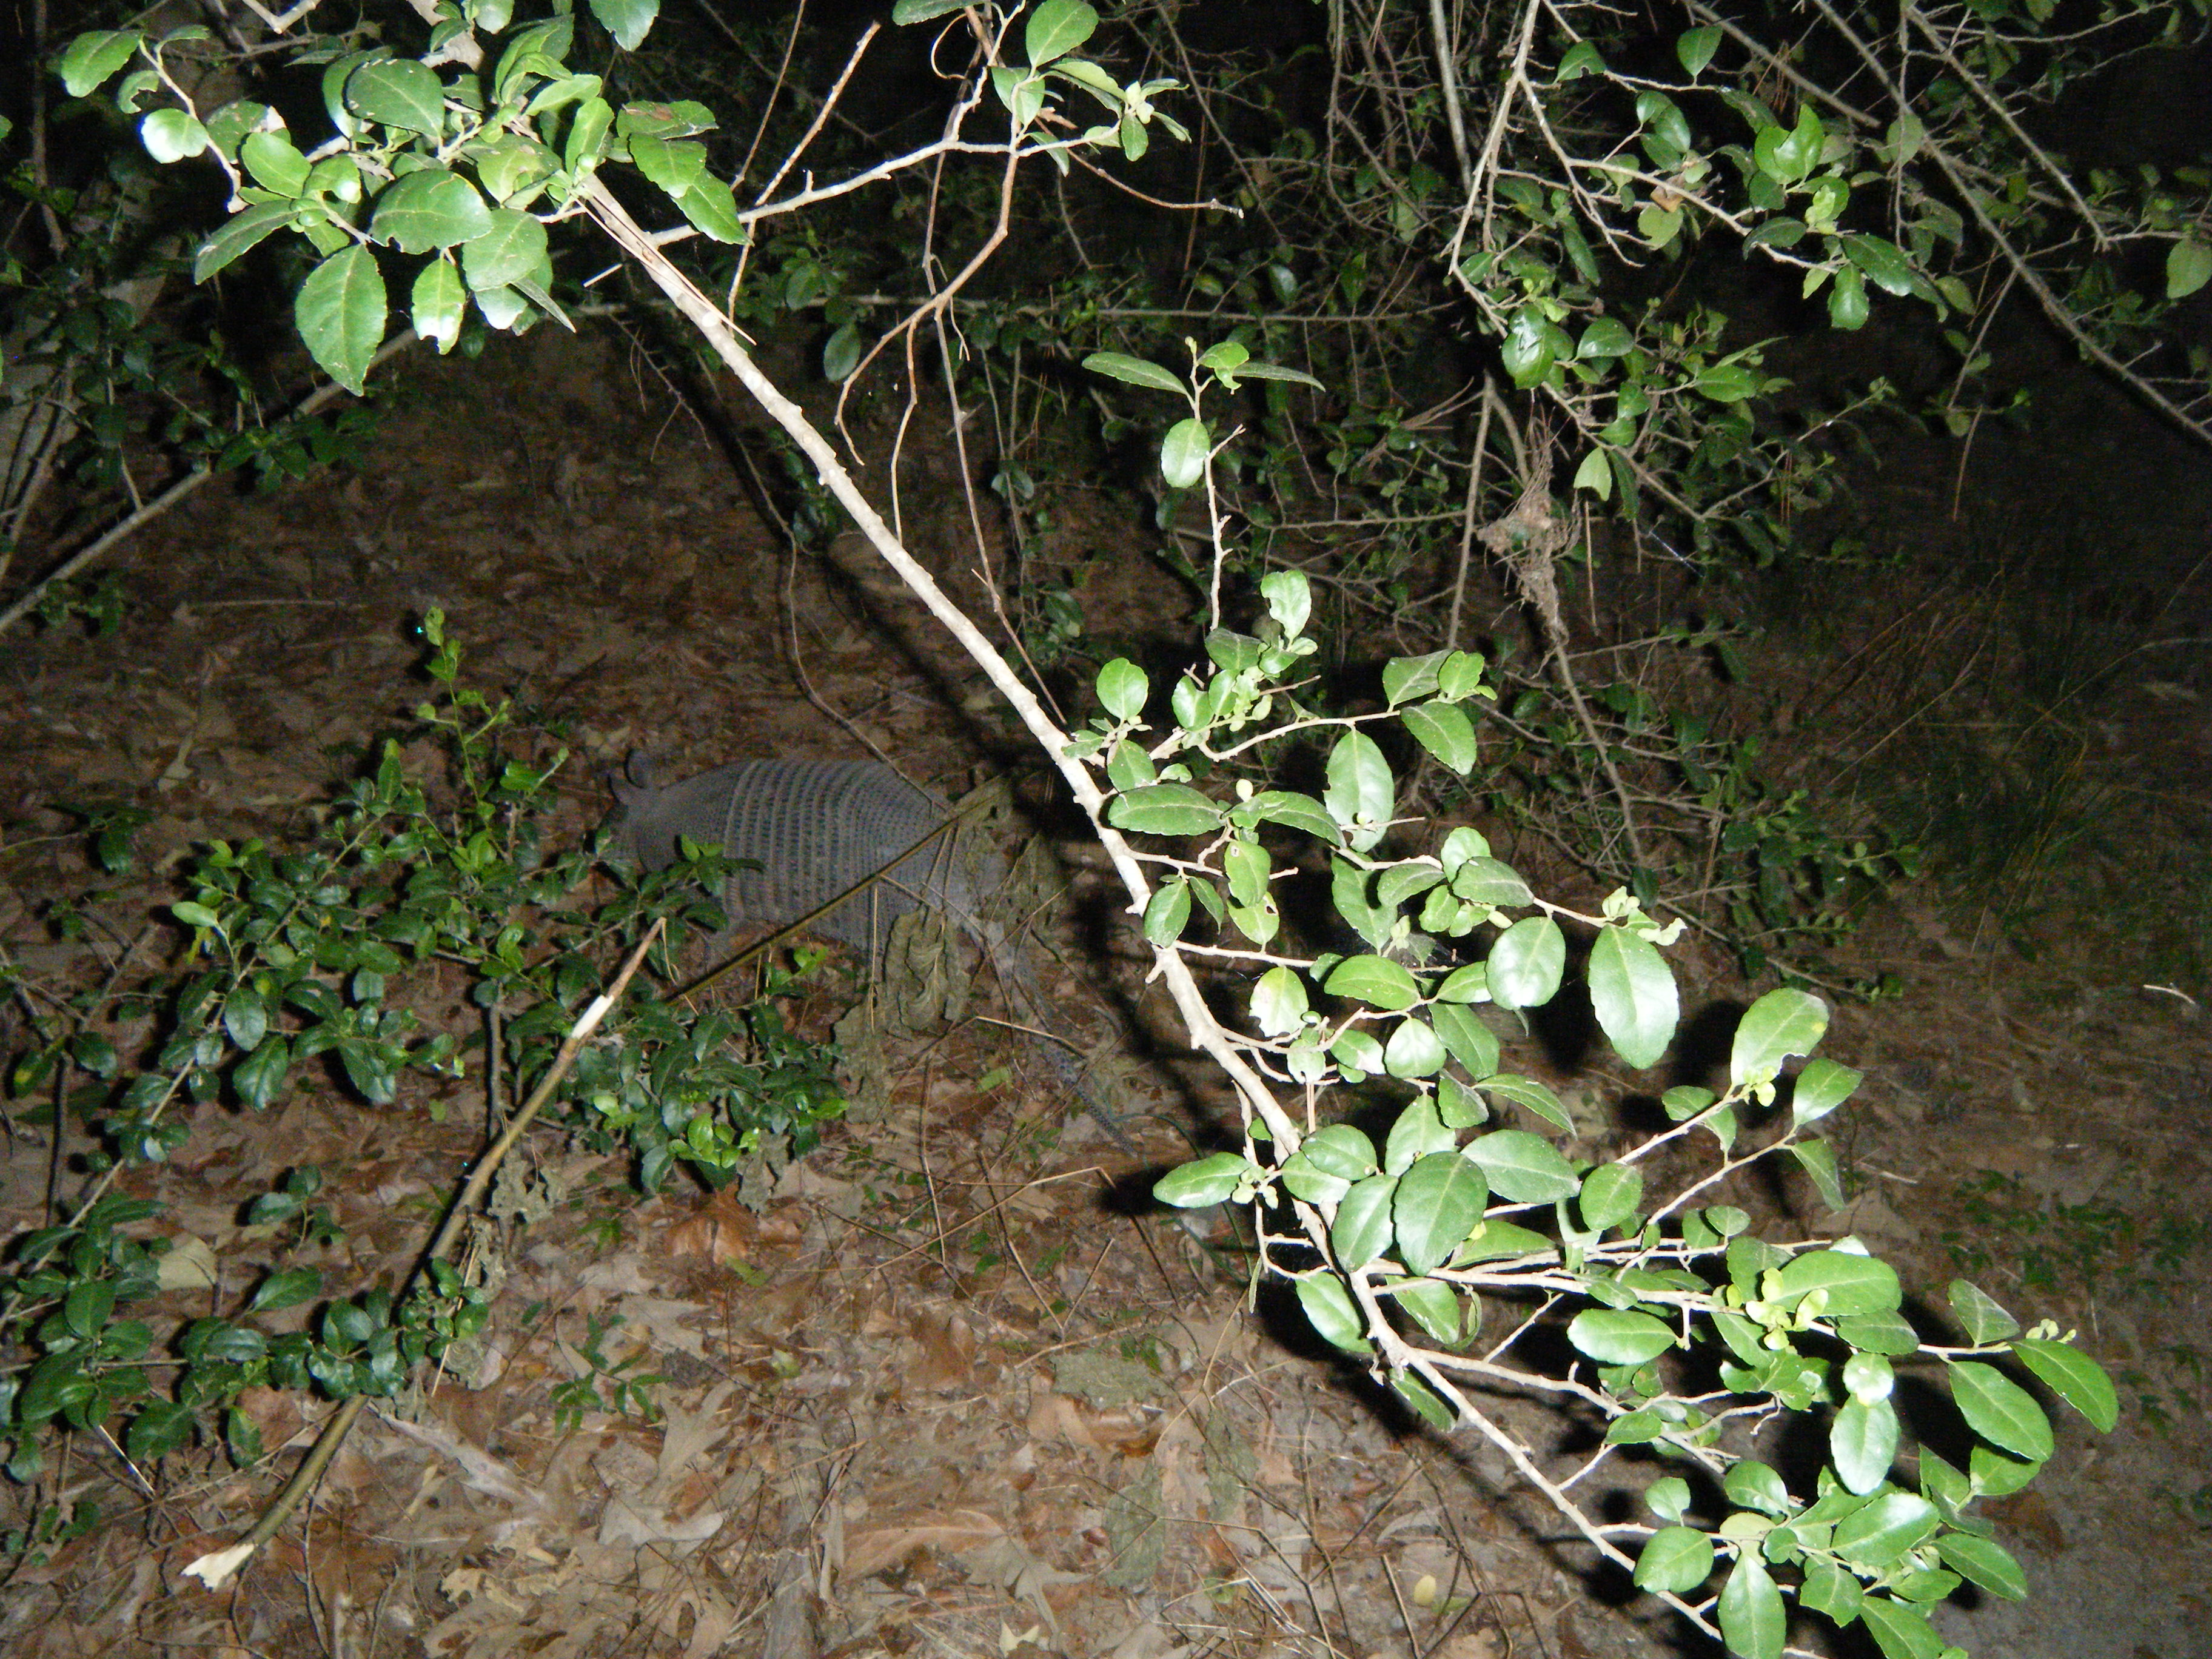 Night stalking armadillos in Huntsville. There were also two gators, but we forgot the camera.